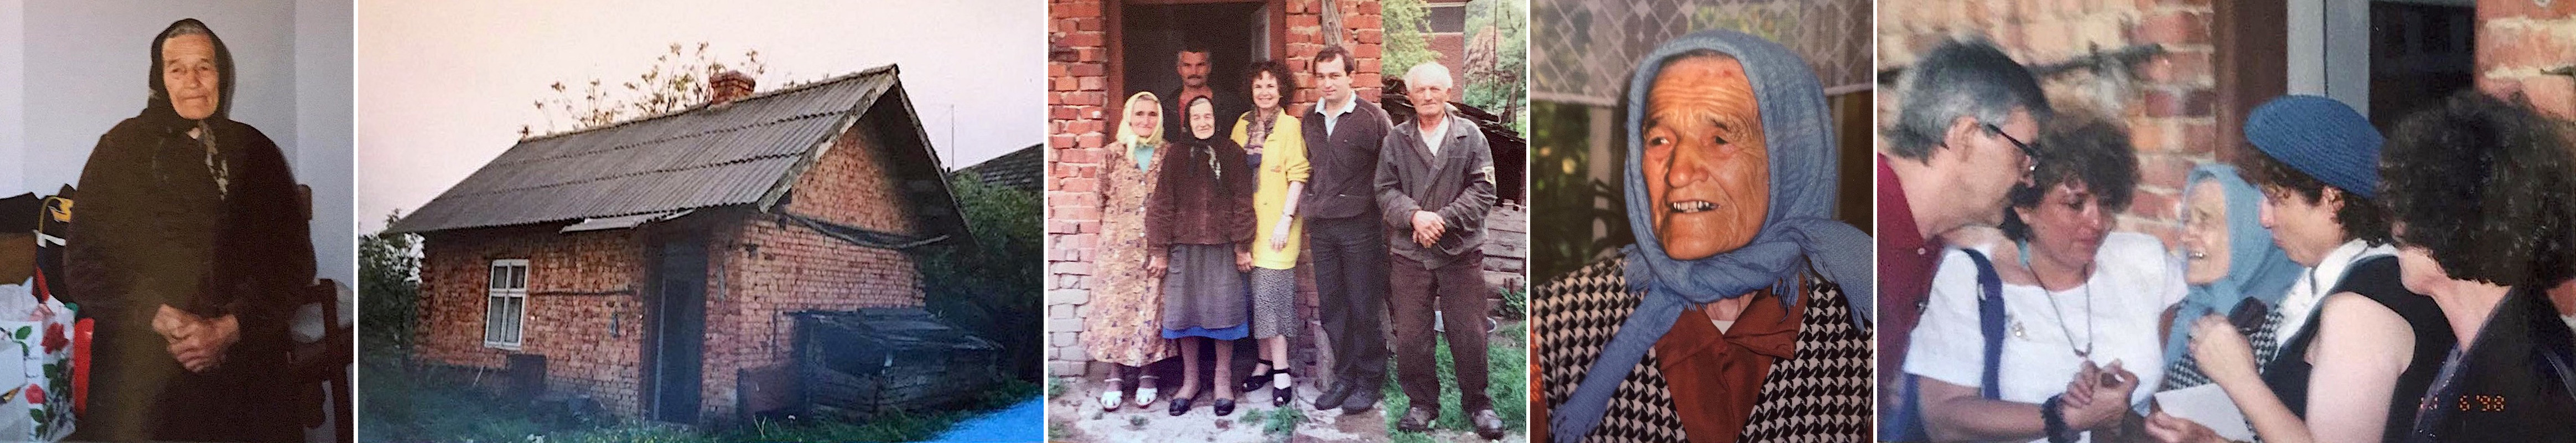 Paranka Borachok at her house in 1994 with Cipora and the family of one of Paranka's sons, and in 1998 with Cipora and her sisters